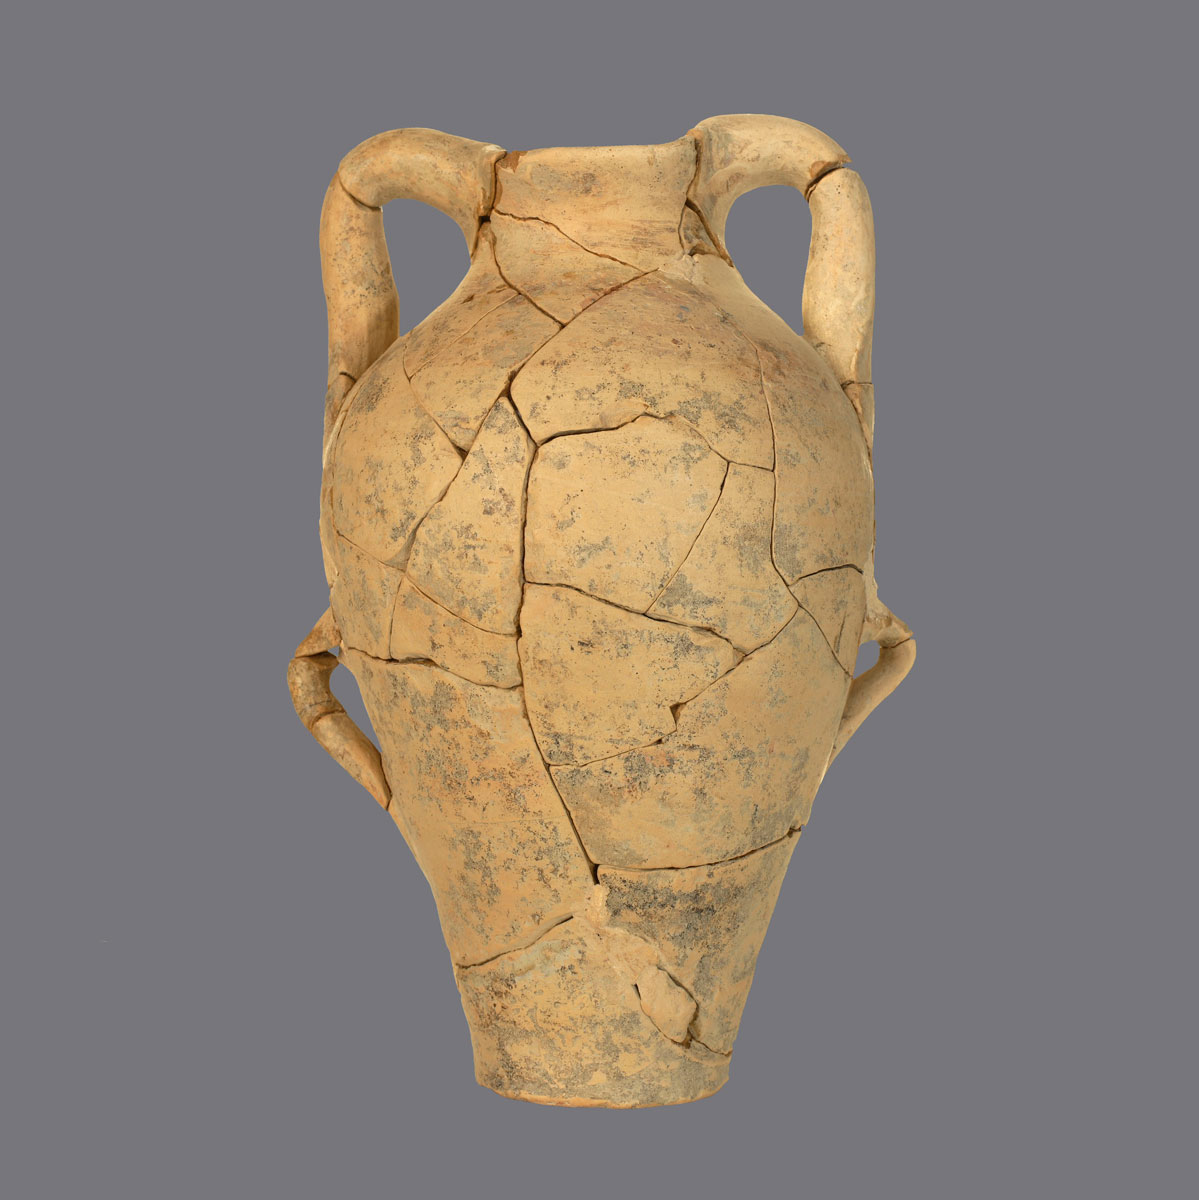 Fig. 9. Amphora found in Room 13.